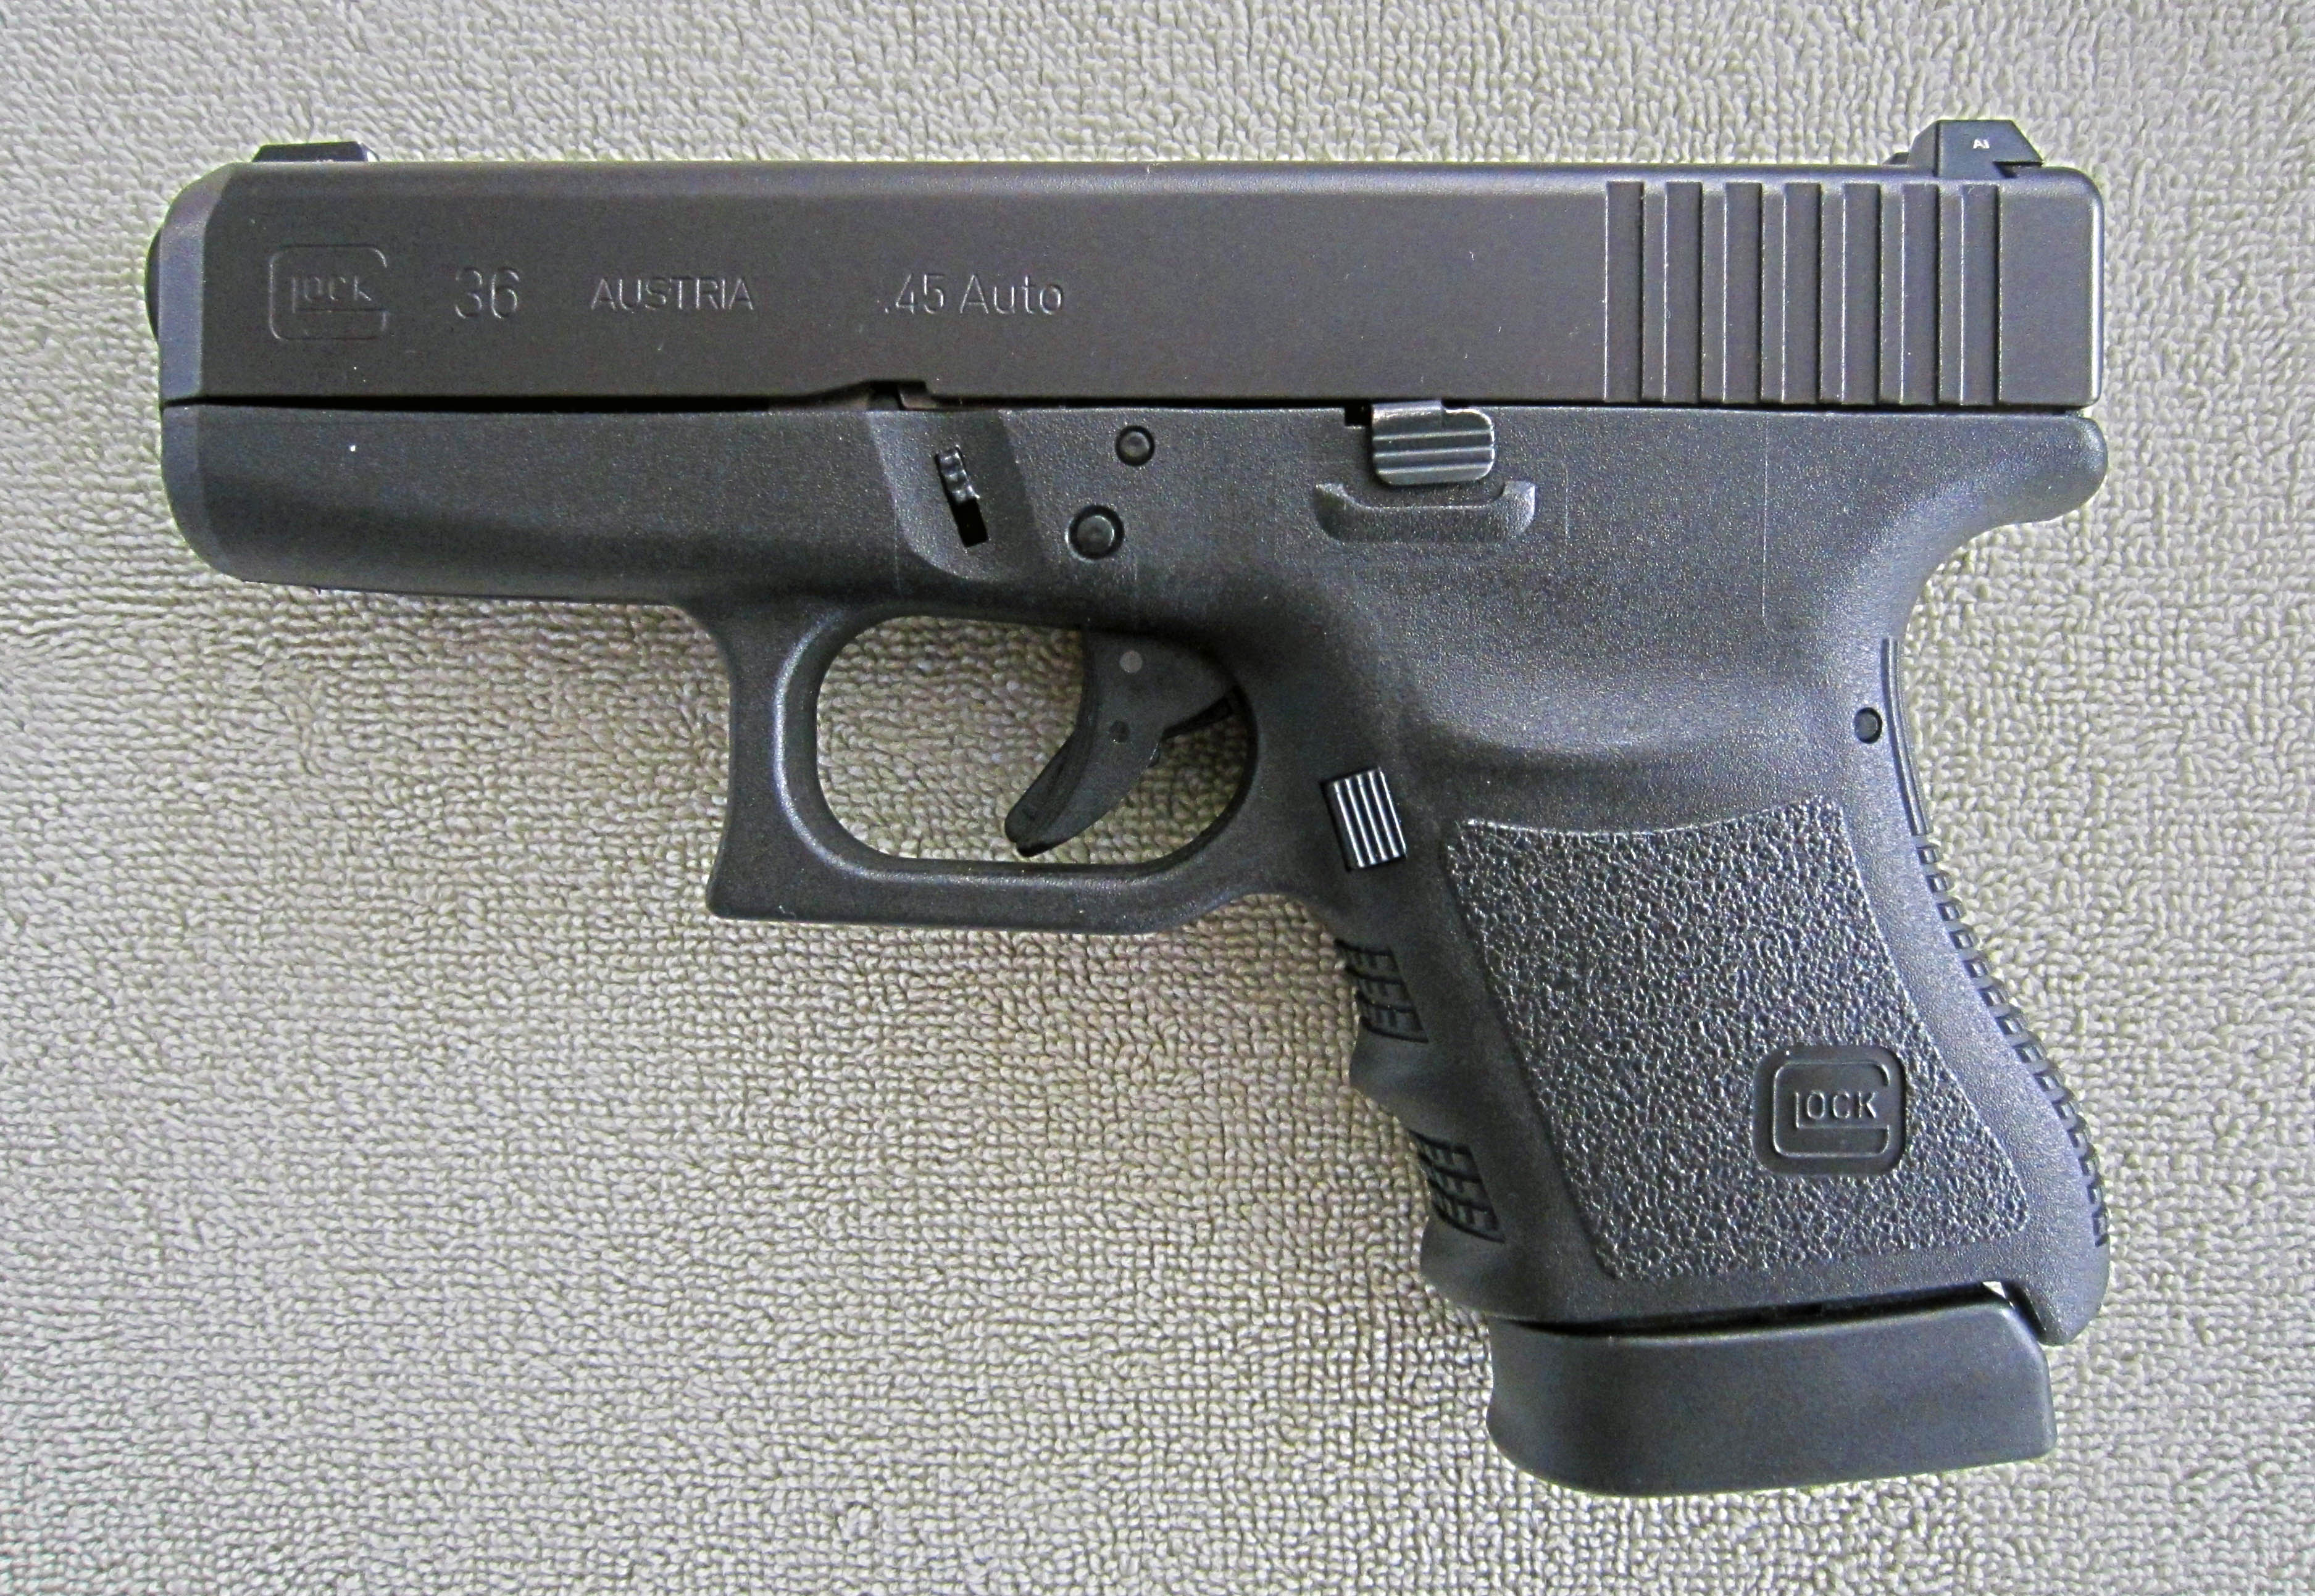 FIREARM REVIEW] Glock 36 Review For Concealed Carry – Concealed Nation